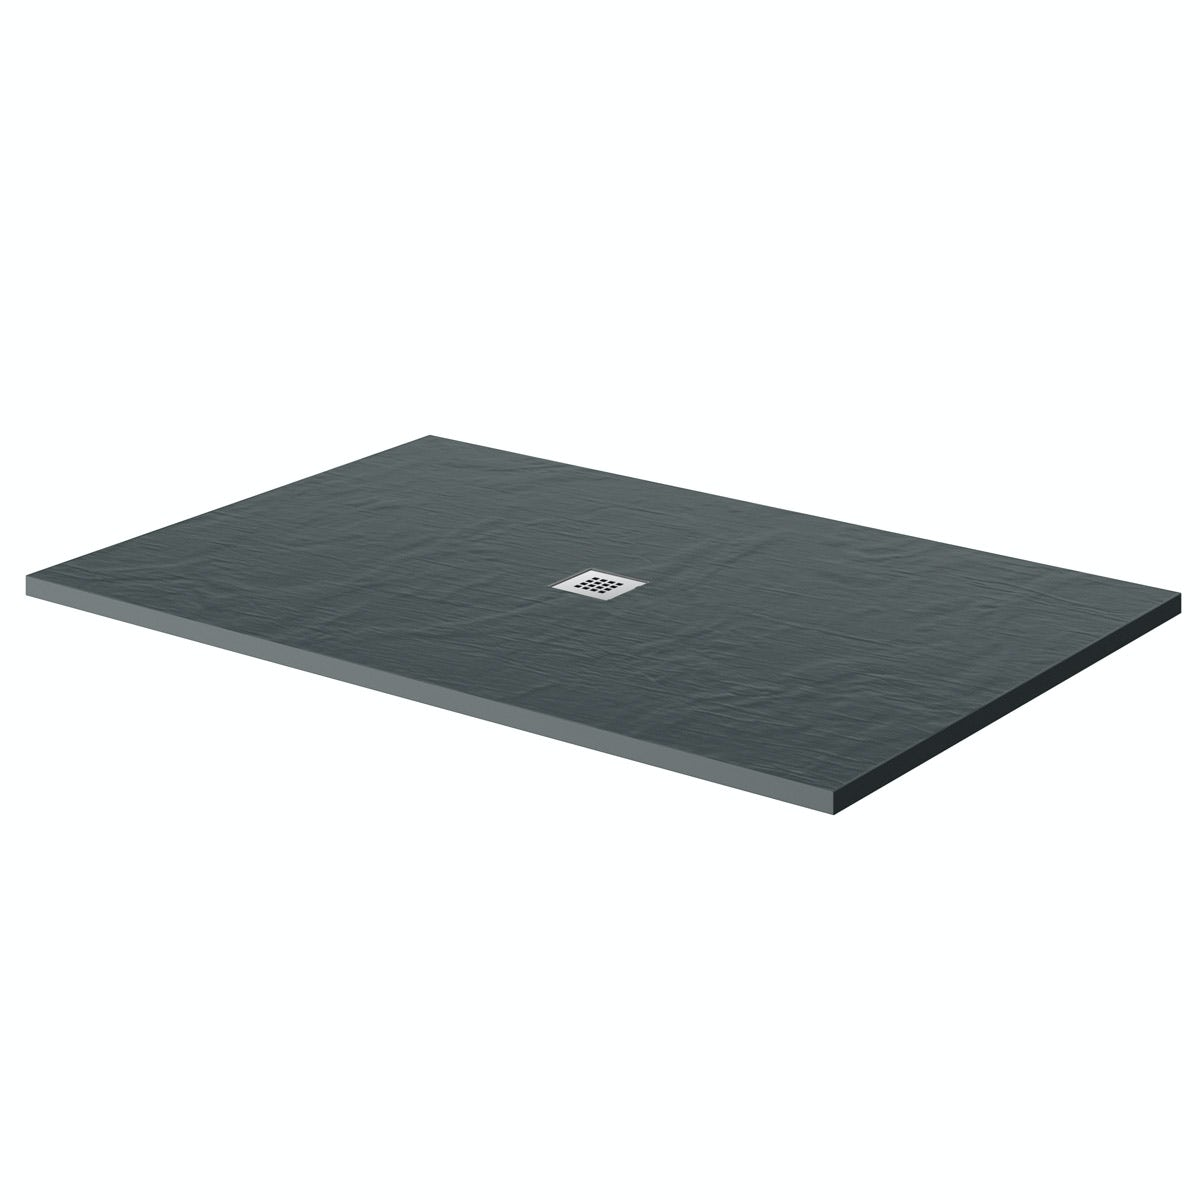 Mode grey slate effect rectangle stone shower tray